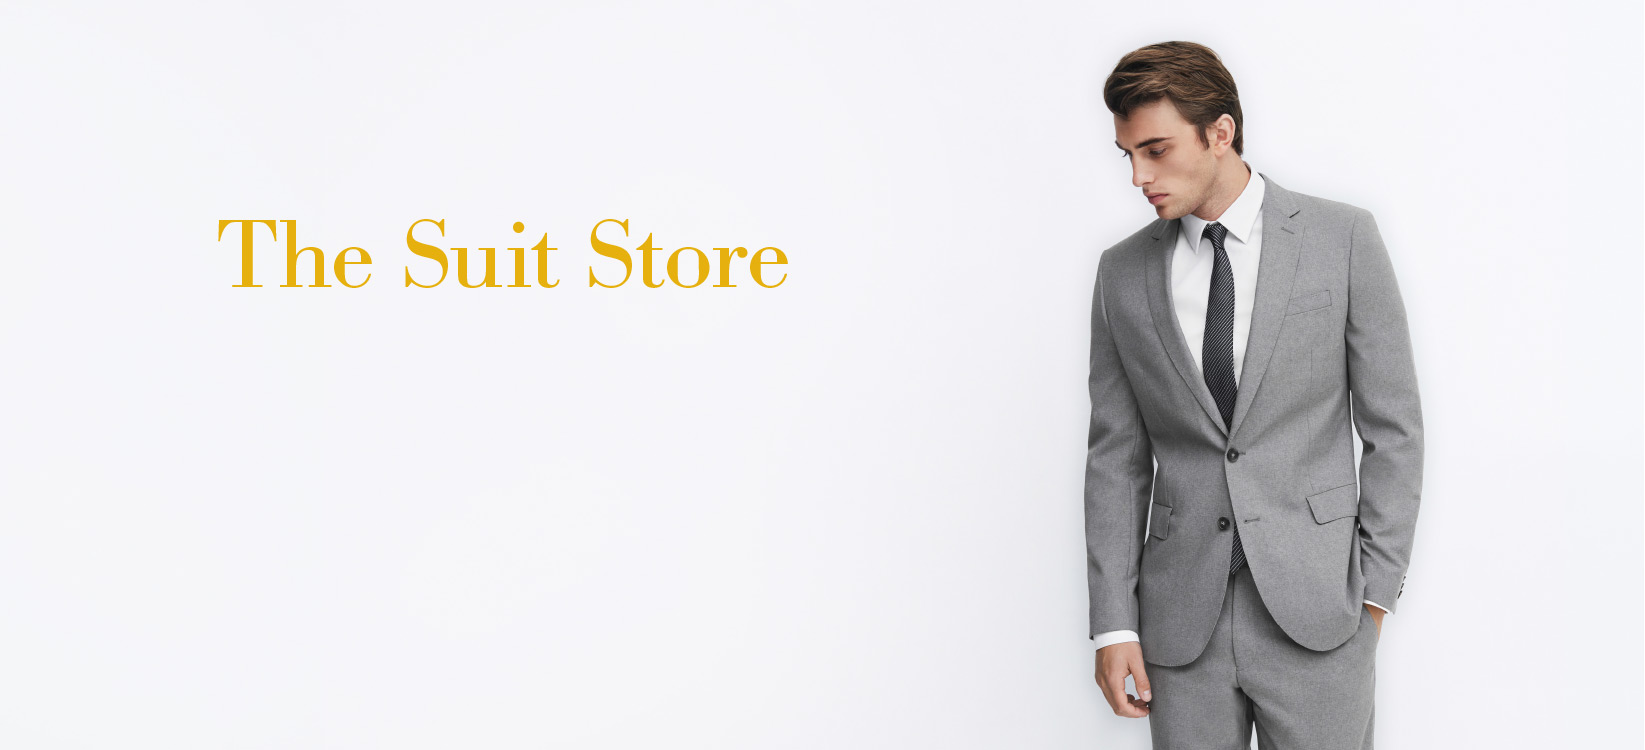 The Suit Store